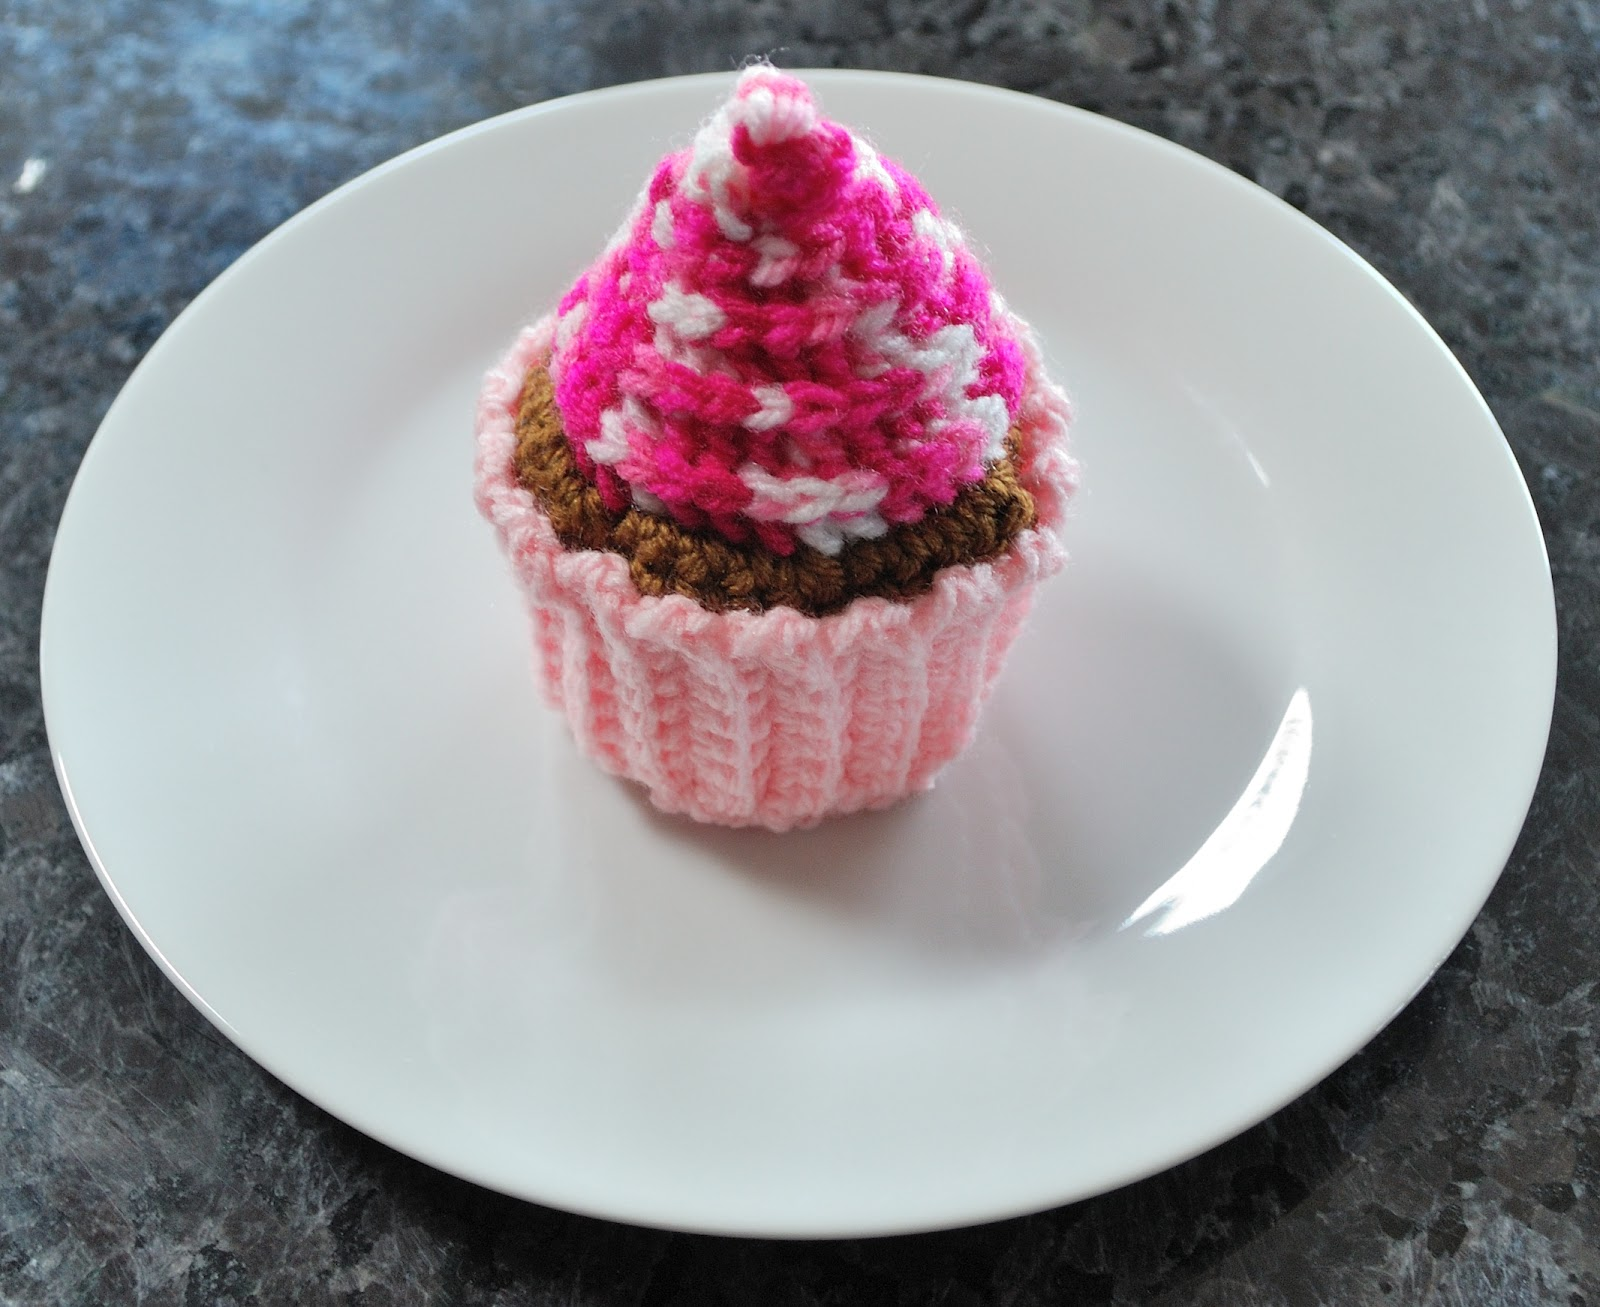 Everythings better with a touch of sugar crochet cupcake with crochet cupcake with frosting swirl so heres a cupcake i made and im posting the pattern on ravelry or trying to figure out how to anyway bankloansurffo Gallery